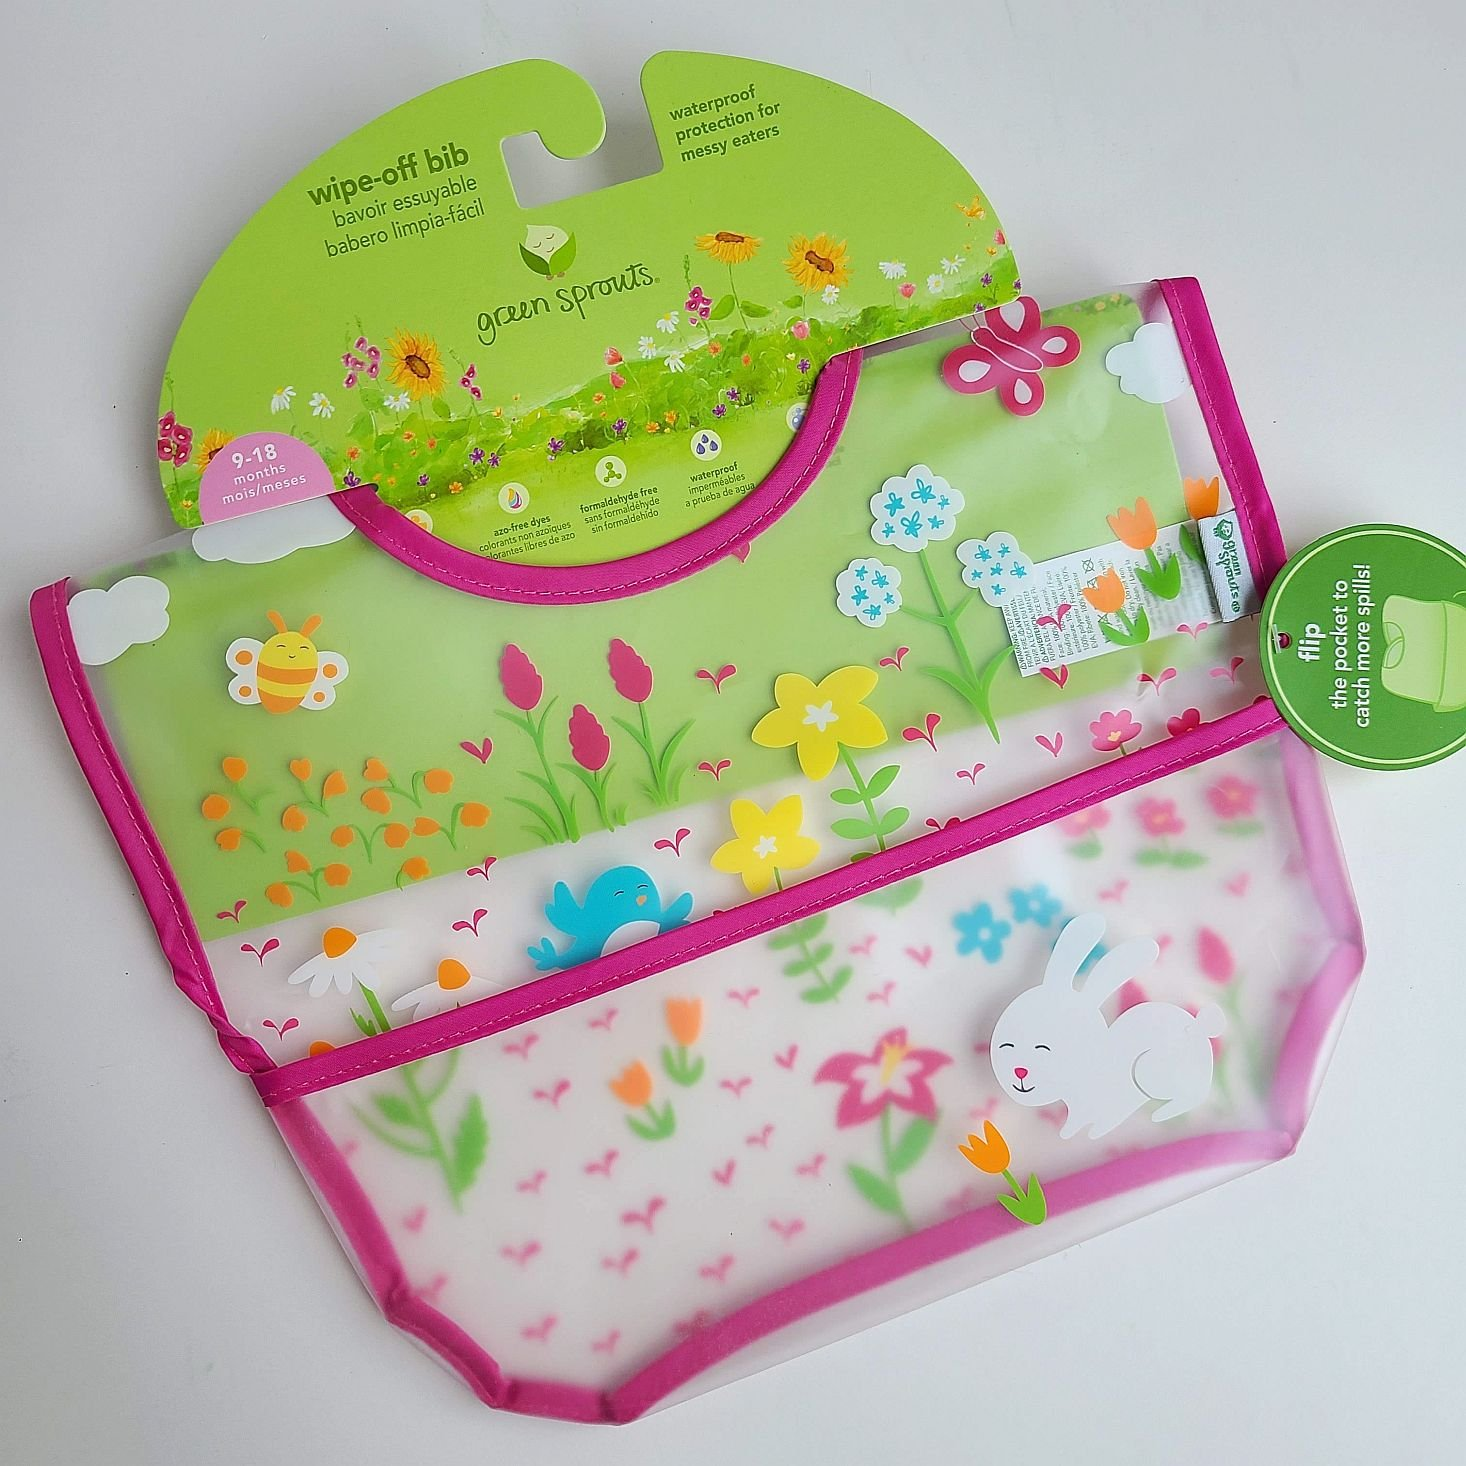 Ecocentric Moms Box September 2020 bib